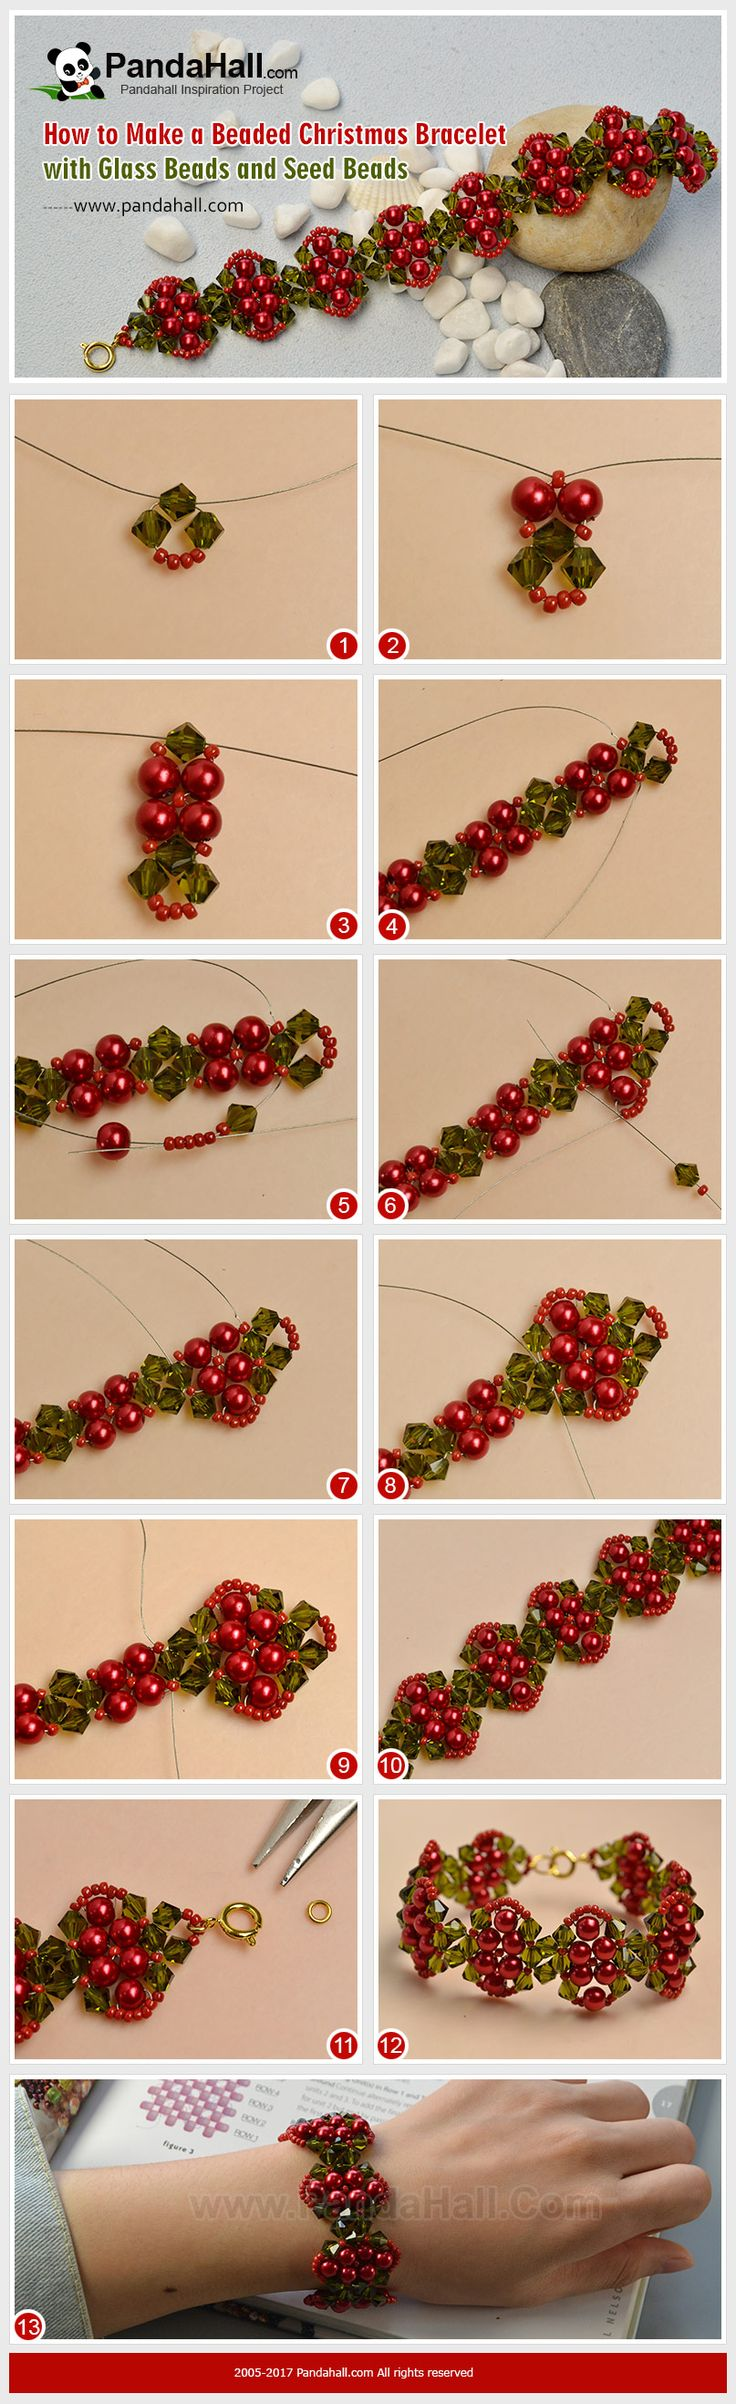 PandaHall Christmas Craft Idea-----Beaded Christmas Bracelet with Glass Beads and Seed Beads This red bead bracelet is made with Christmas classic materials, including red glass pearl beads, red seed beads and green glass beads, which is very proper to wear in such a festive holiday. Just need a little beading skills and do not take too much time, you can try it at home. #PandaHall #Christmas #jewelry #bracelet #stitch #pearl #diy #tutorial #craft #jewelrymaking #promotion